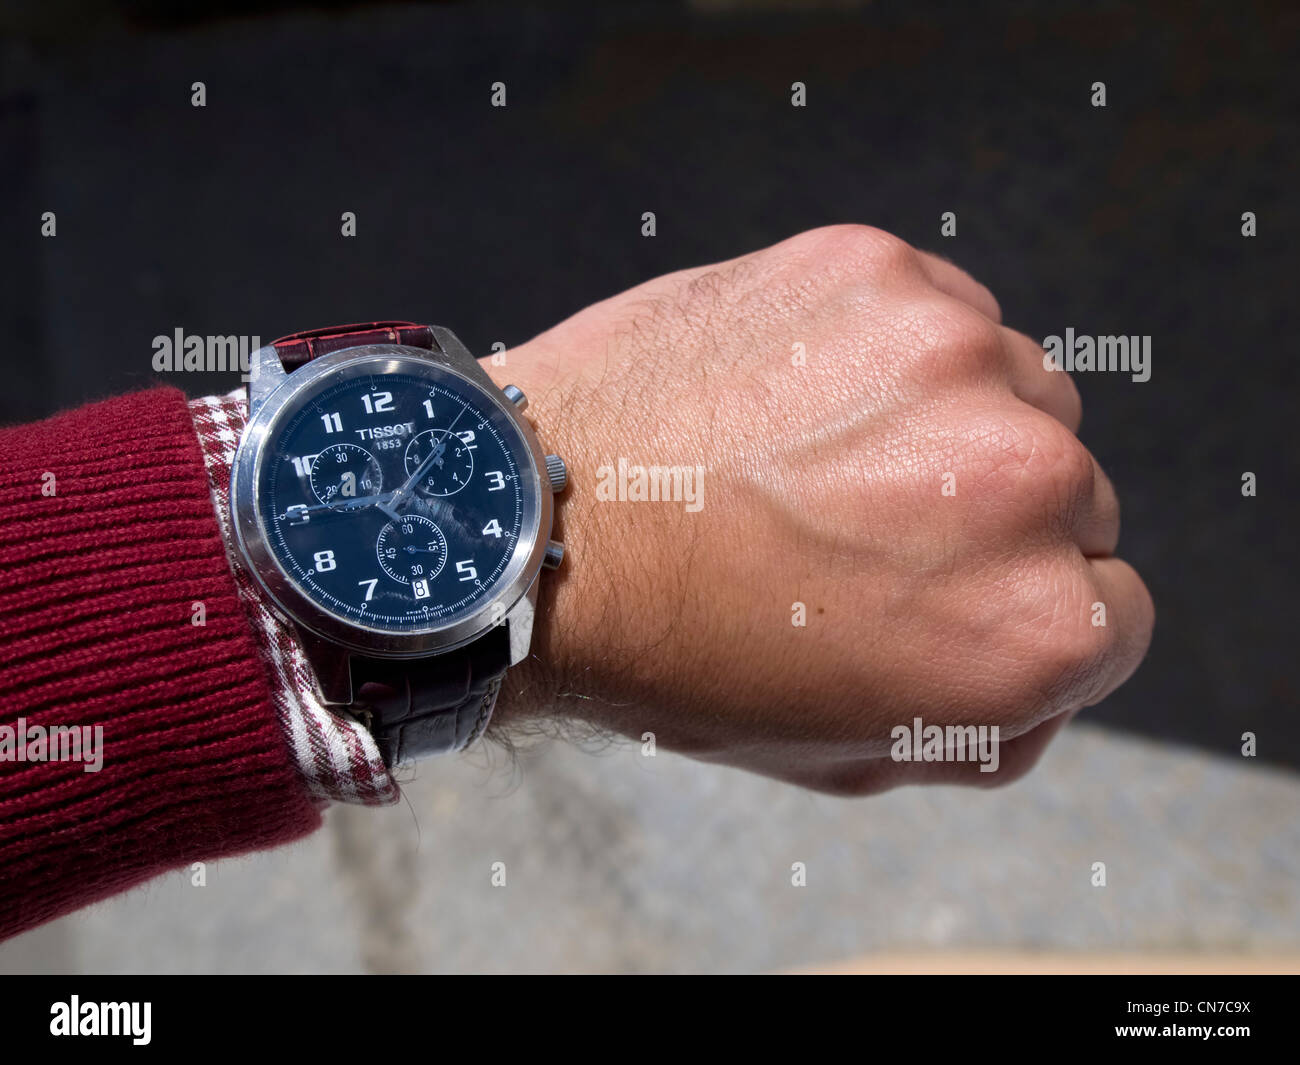 Person using a Tissot wristwatch - Stock Image